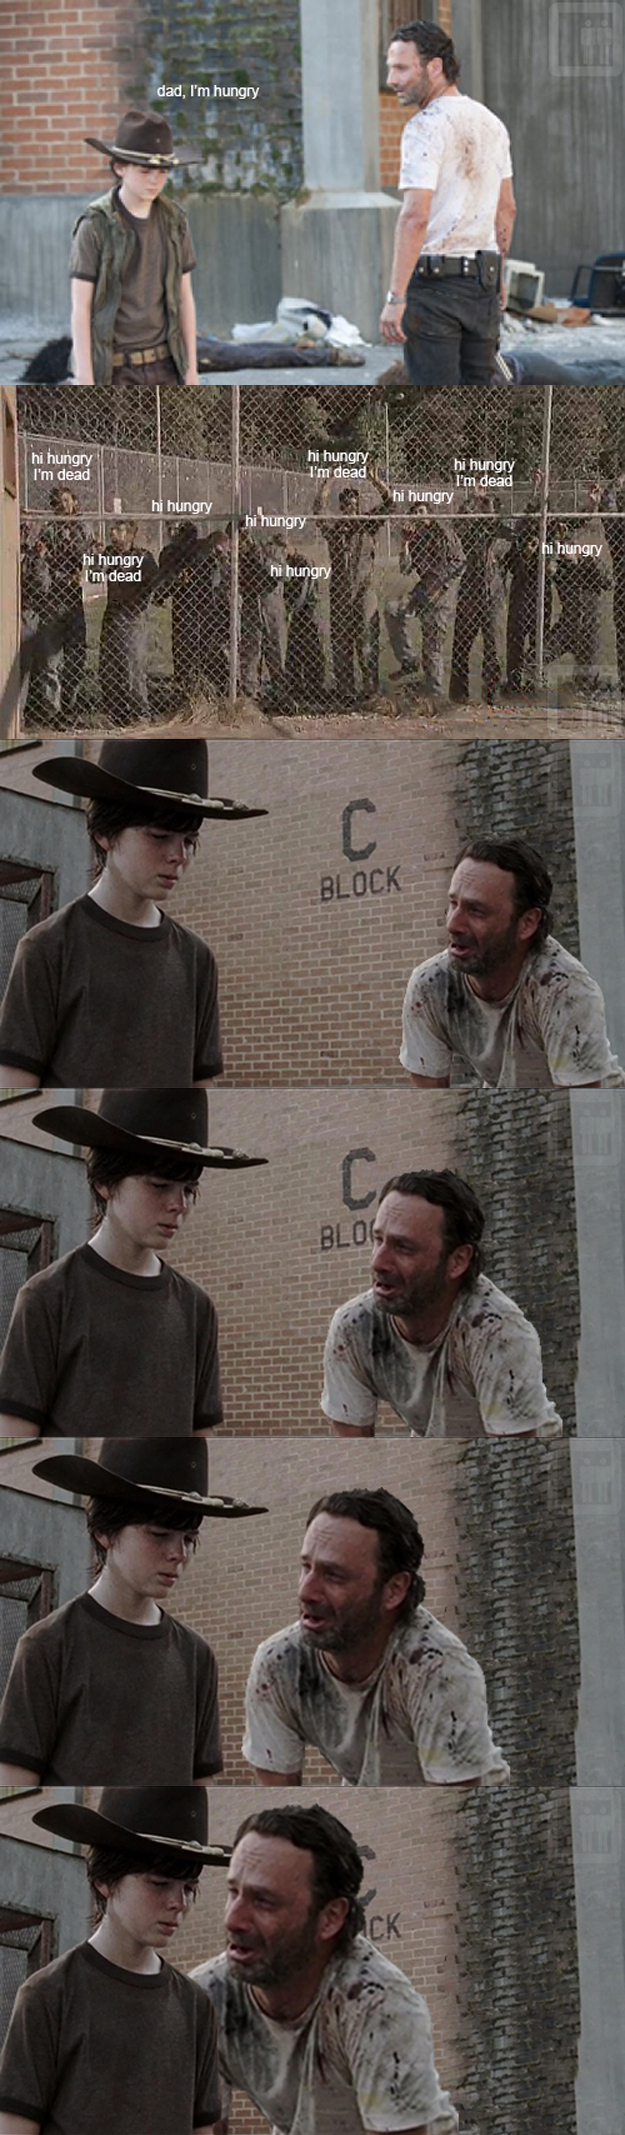 Walking Dead Dad jokes 28.